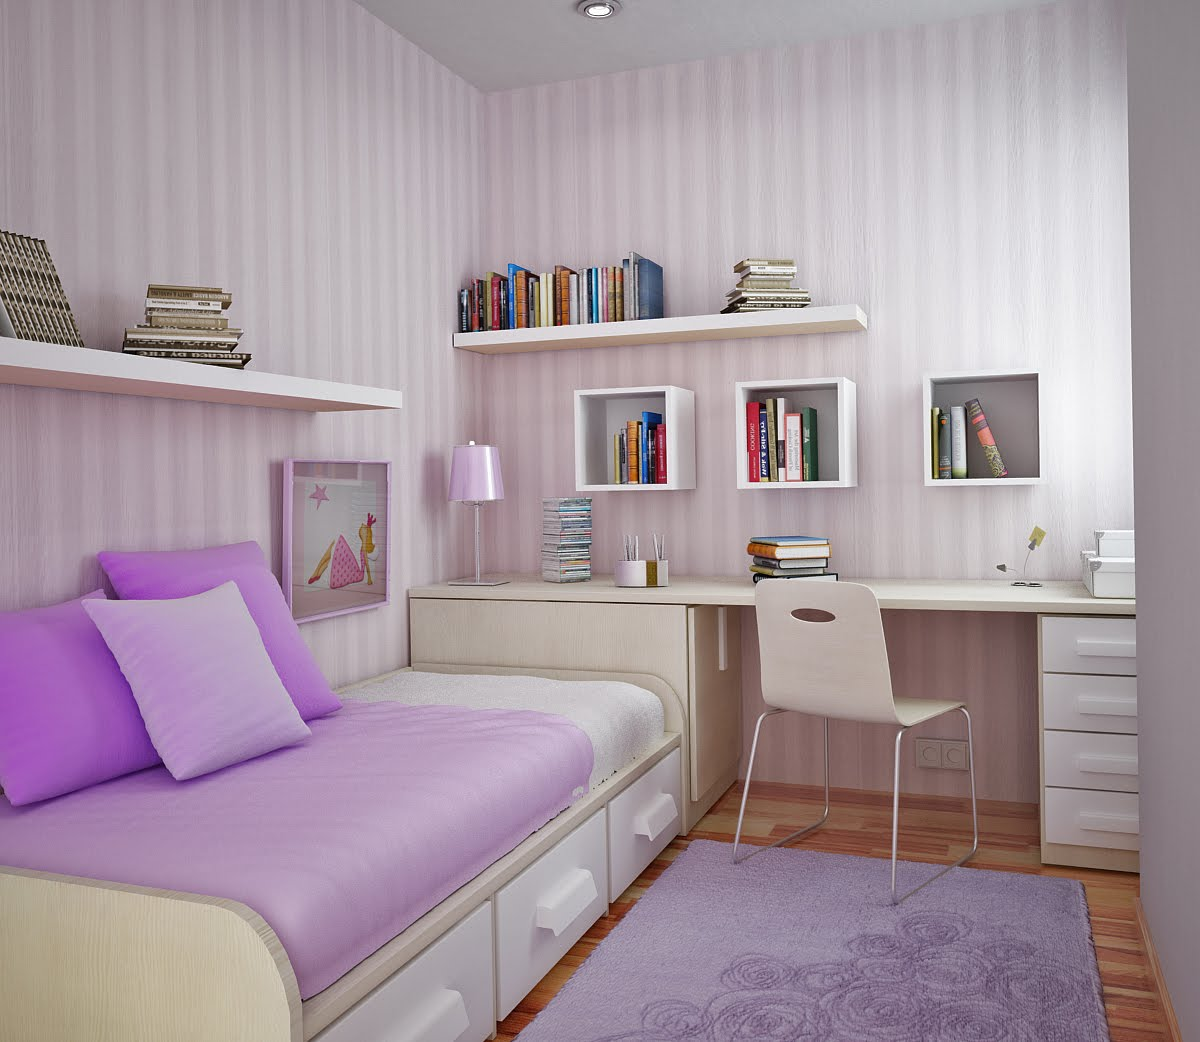 Kids Bedroom Design Ideas kidsbedroomdecoratingideaspinkprincegirlsbedroomideasinsidechild bedroomdecor kids bedroom decorating ideas Lilac Room